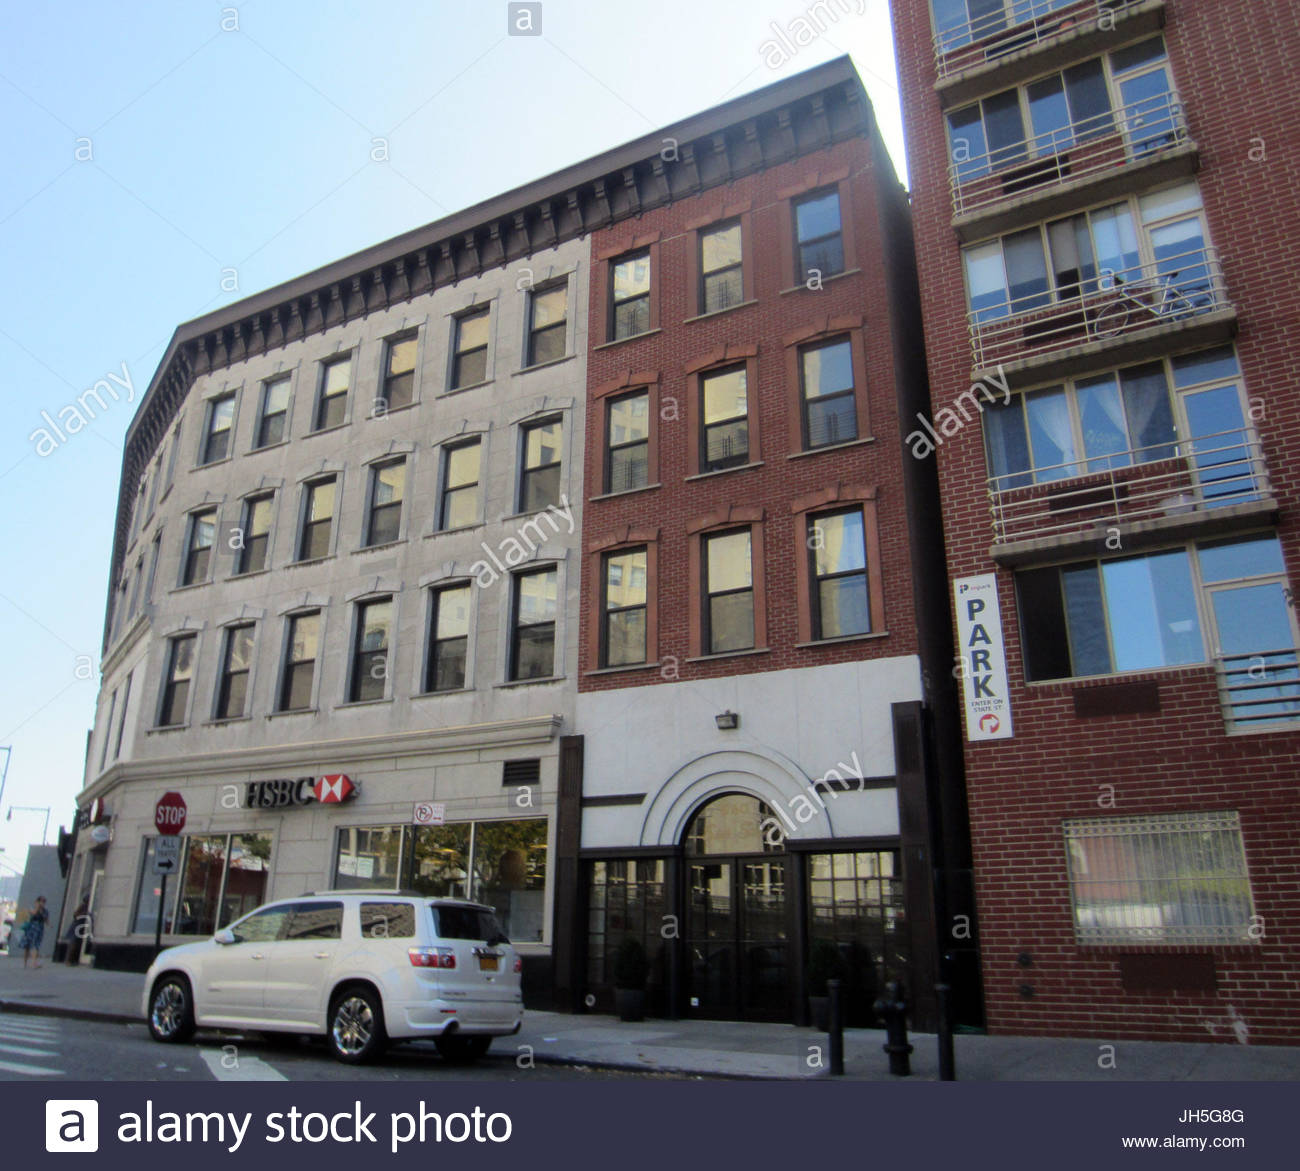 Jay zs old home the brooklyn address that jay z names as his jay zs old home the brooklyn address that jay z names as his stash spot in the blueprint 3 track empire state of mind he raps i used to cop in harlem malvernweather Images